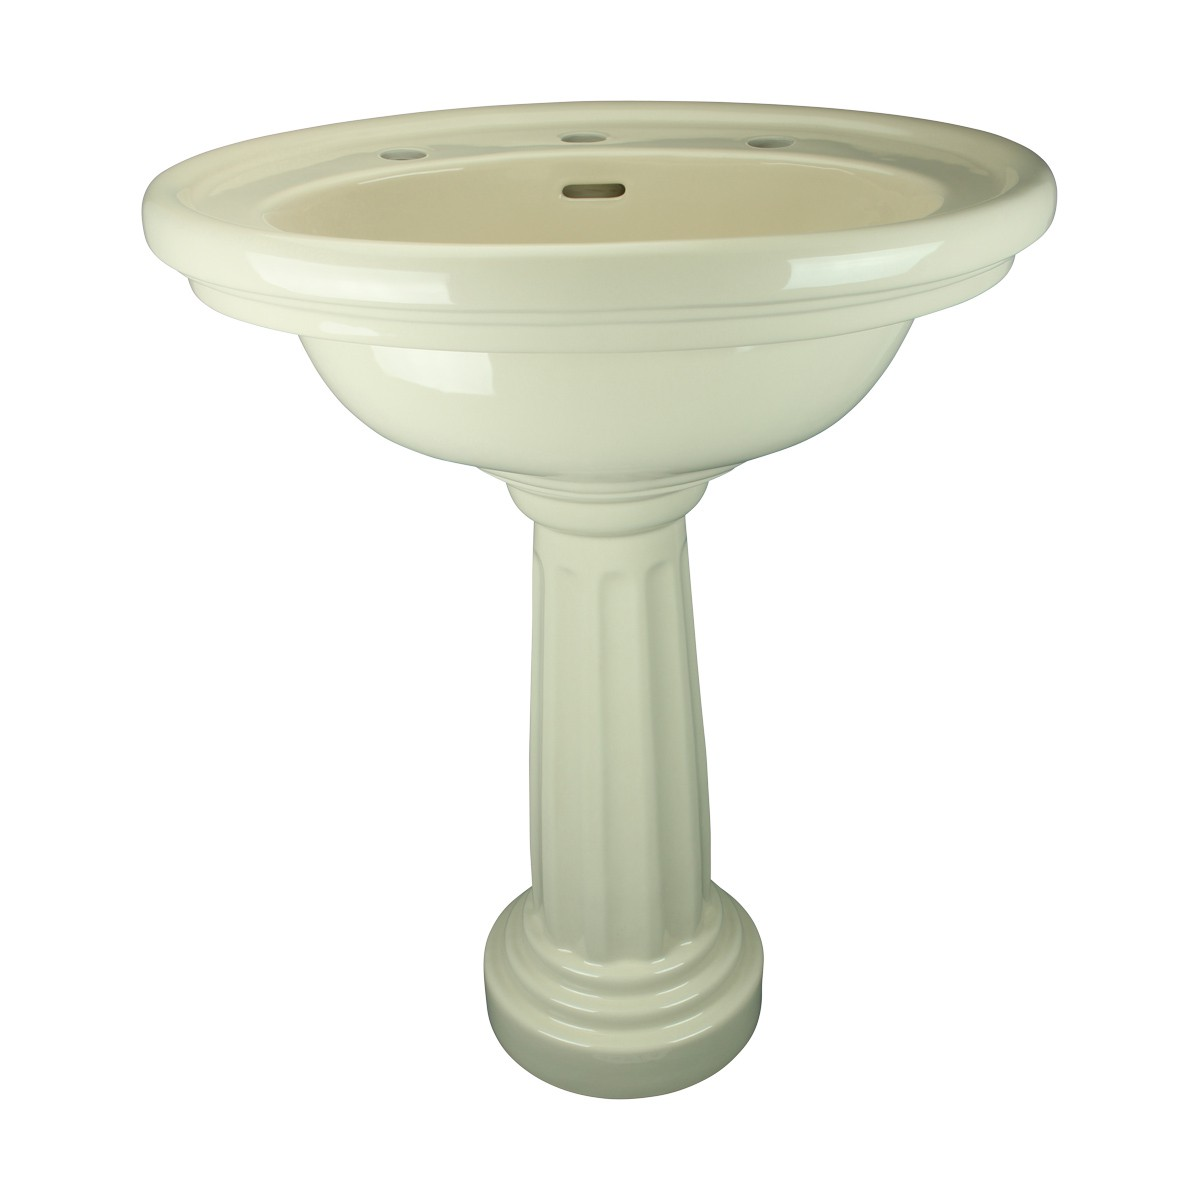 Biscuit Pedestal Sink Philadelphia Oval with 8 Faucet, Drain and PTrap Deluxe Colonial Bone Pedestal Sink Bathroom Sinks Bathroom Pedestal Sink